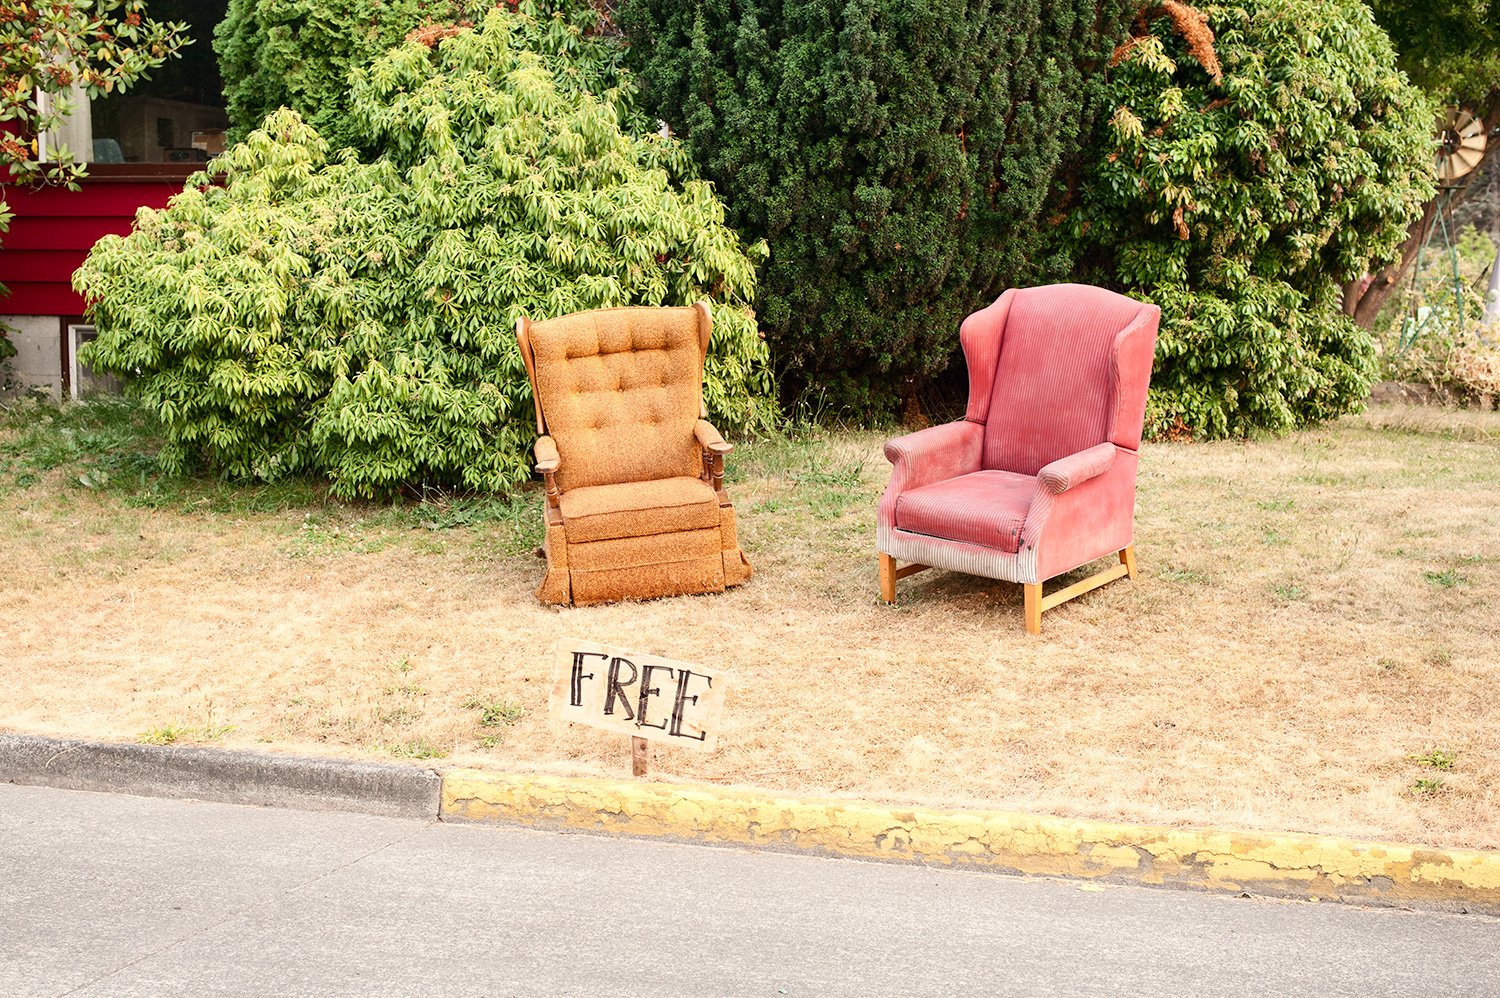 150706_if_you_need_a_chair_i_know_where_4884.jpg